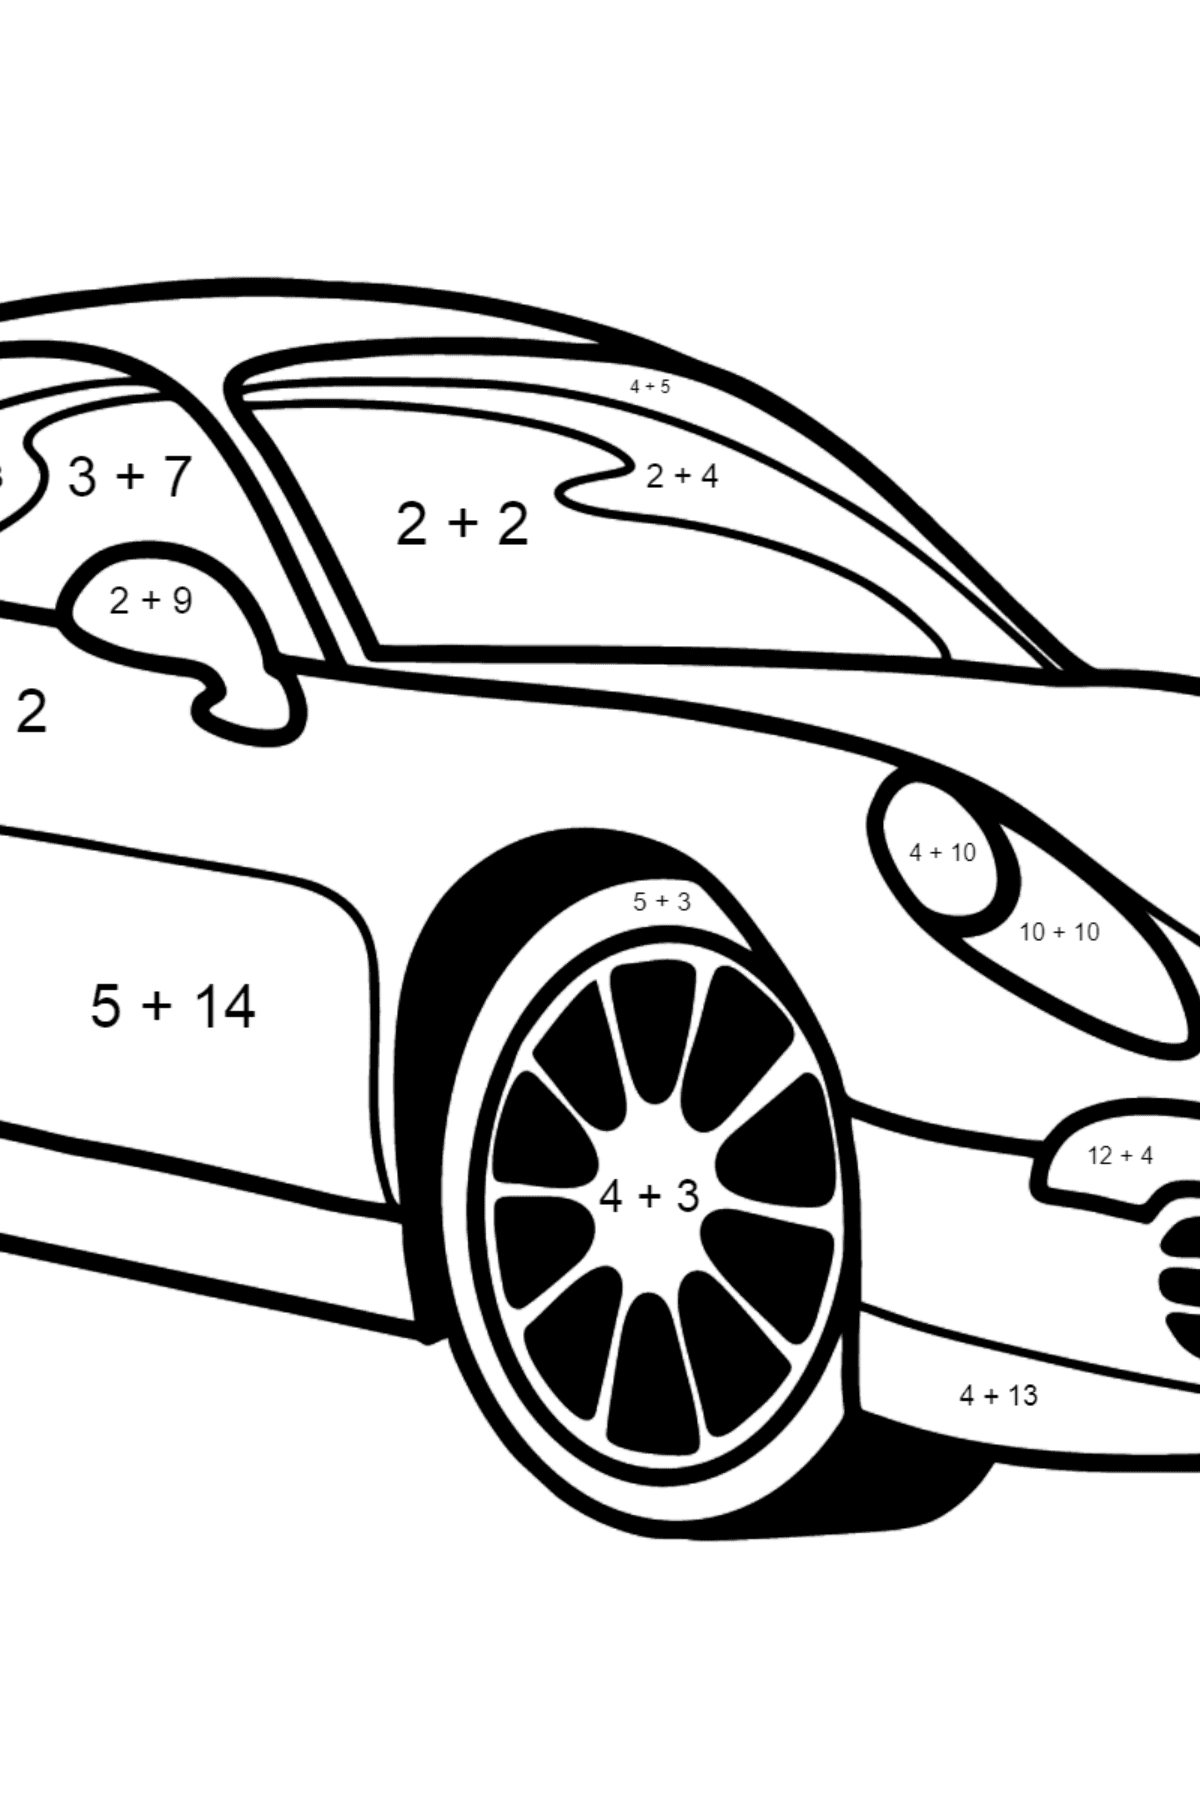 Porsche Cayman Sports Car coloring page - Math Coloring - Addition for Kids